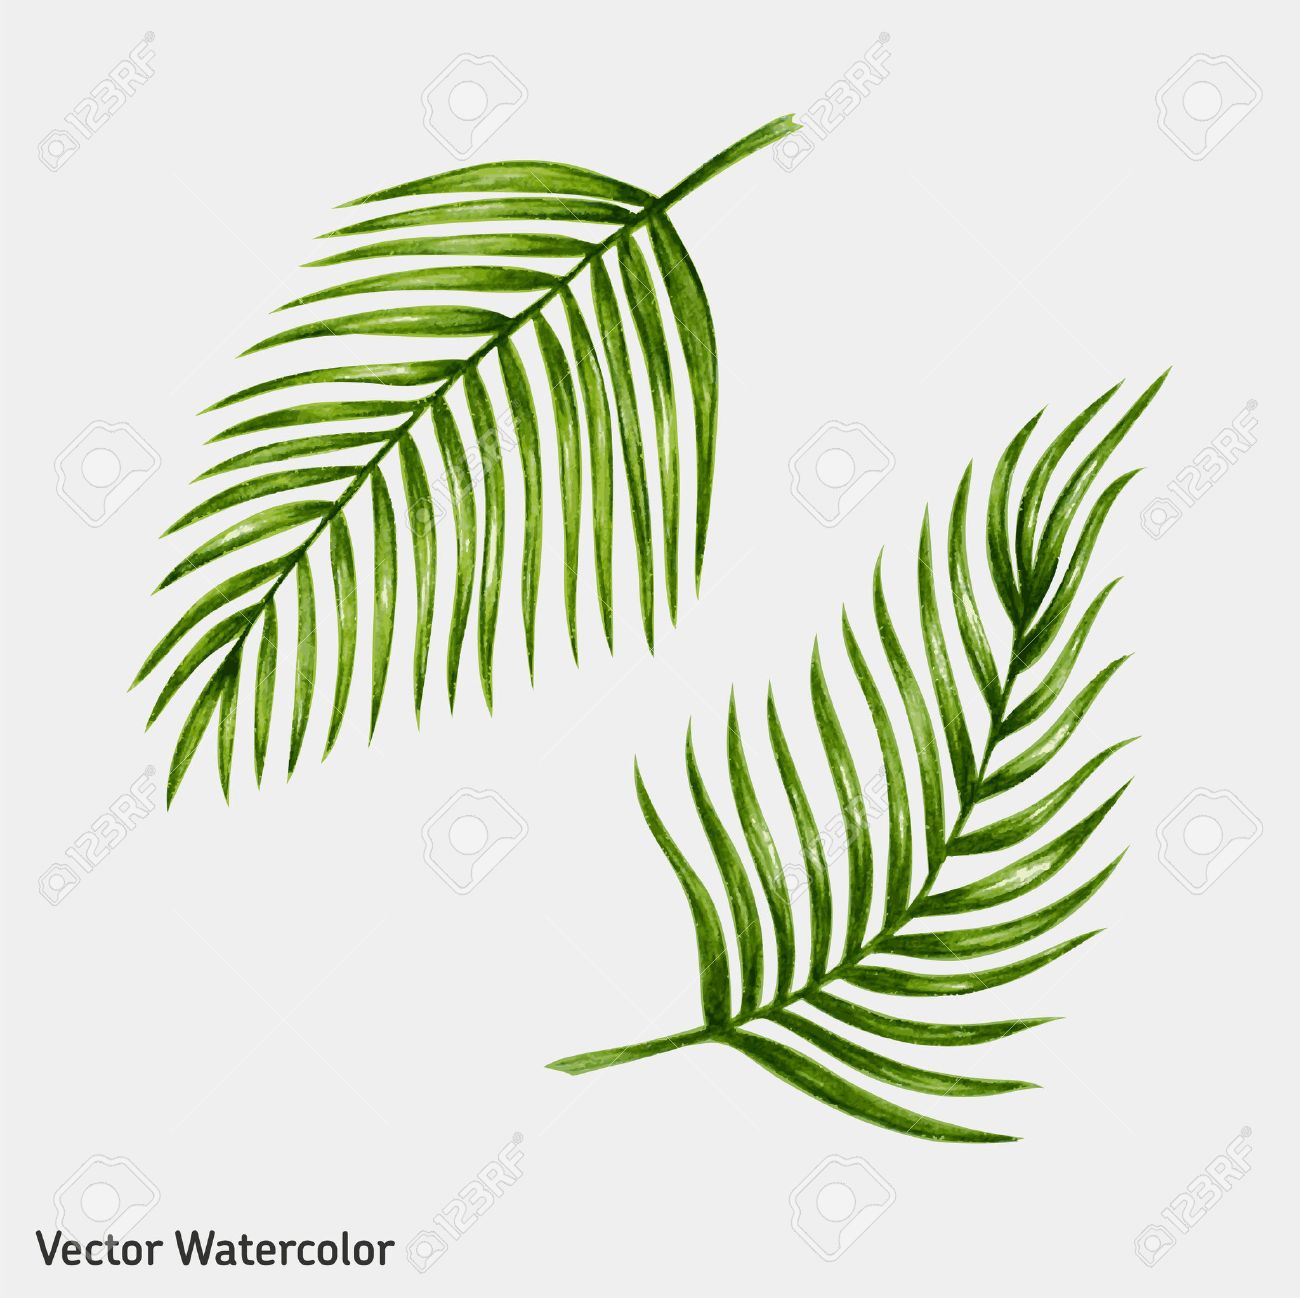 Watercolor tropical palm leaves. Vector illustration. - 43273978